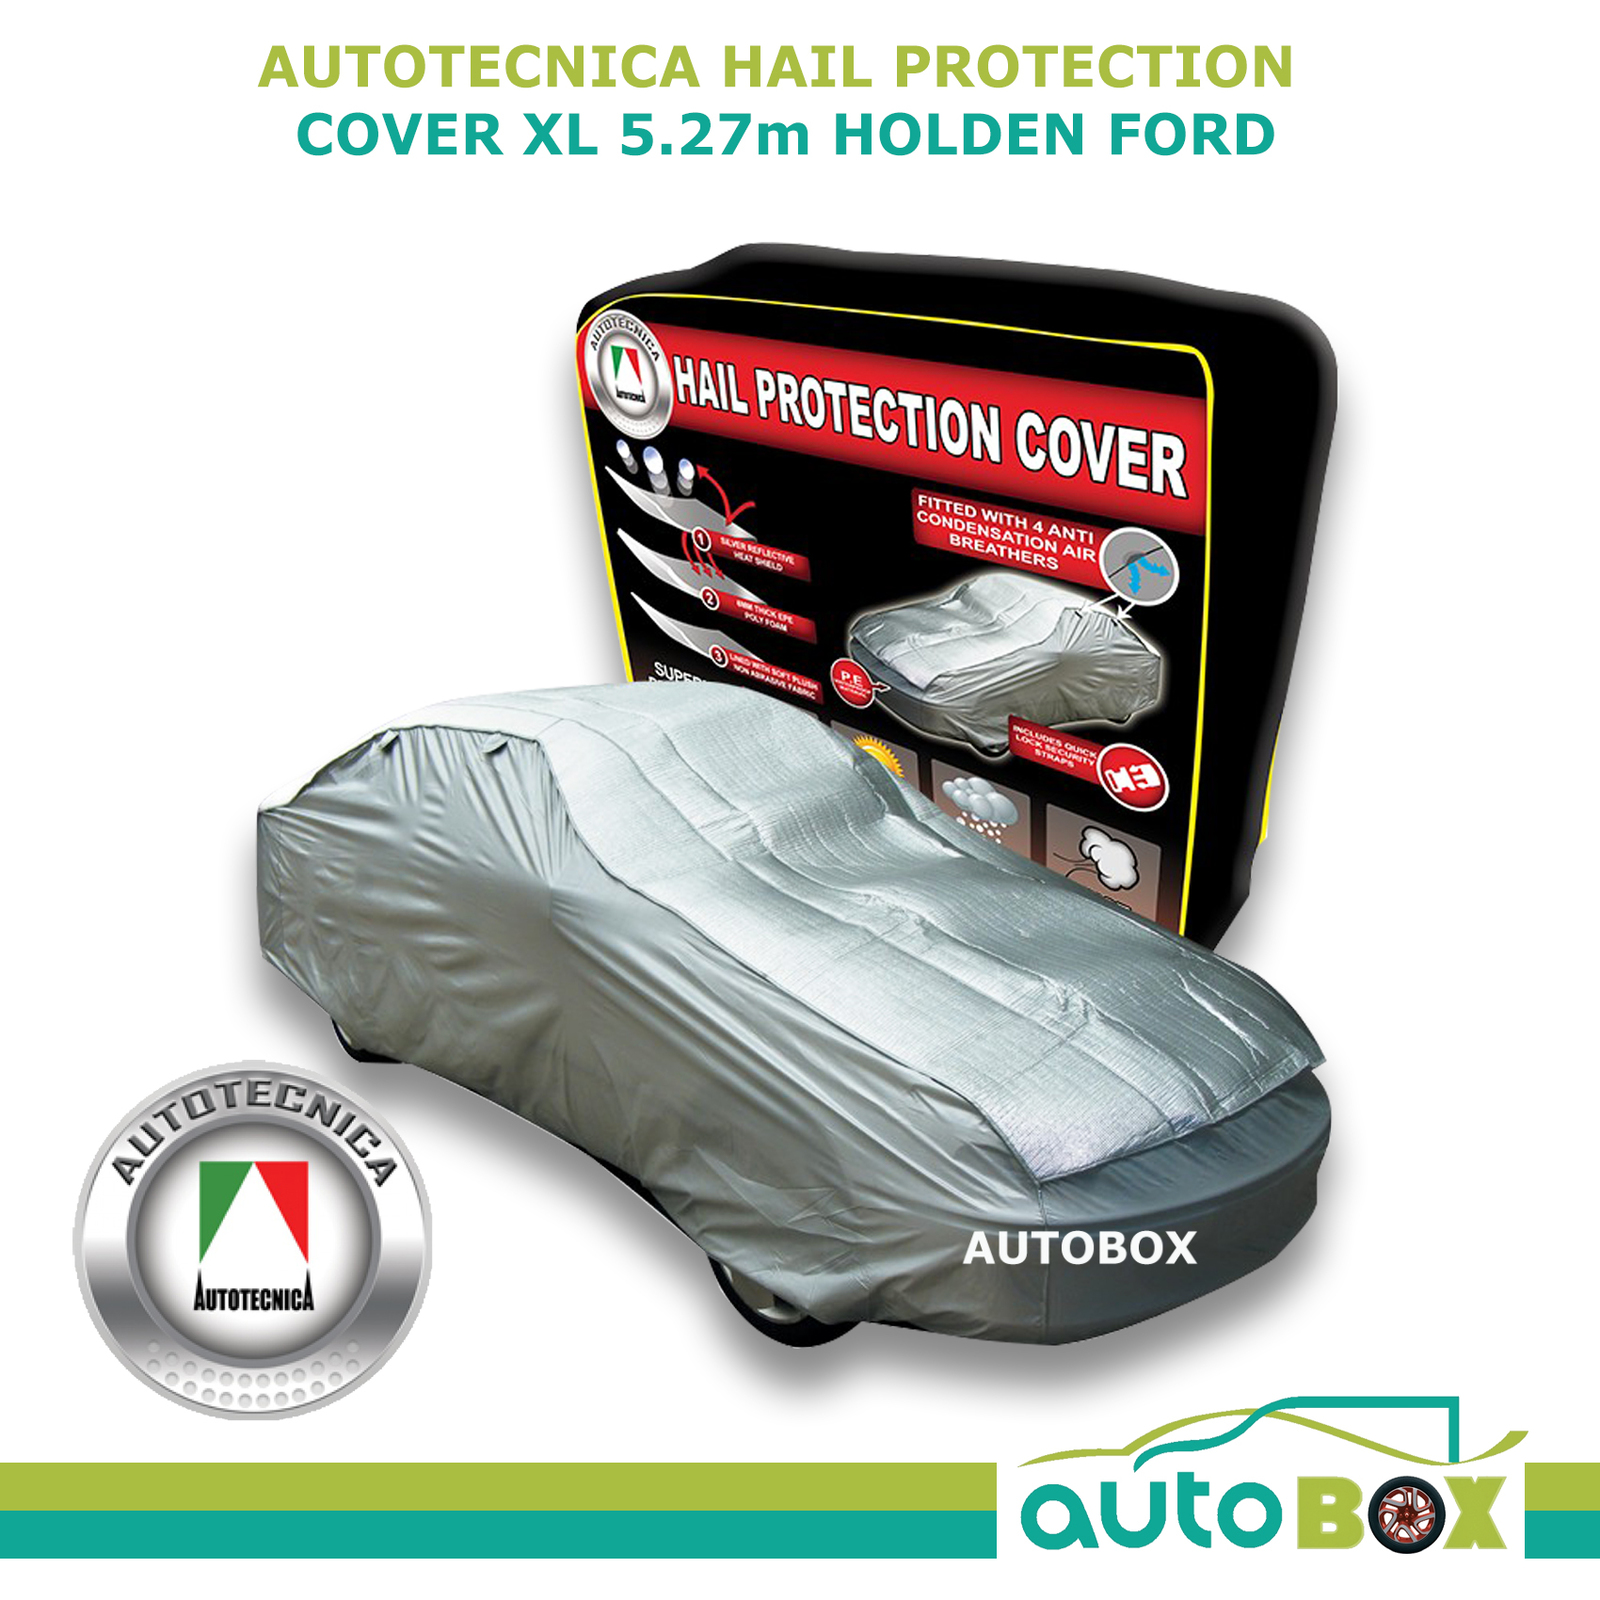 Hail Protection Car Cover >> AUTOTECNICA CAR HAIL STORM STONE PROTECTION COVER XL to 5.27m Holden VF Ford FG